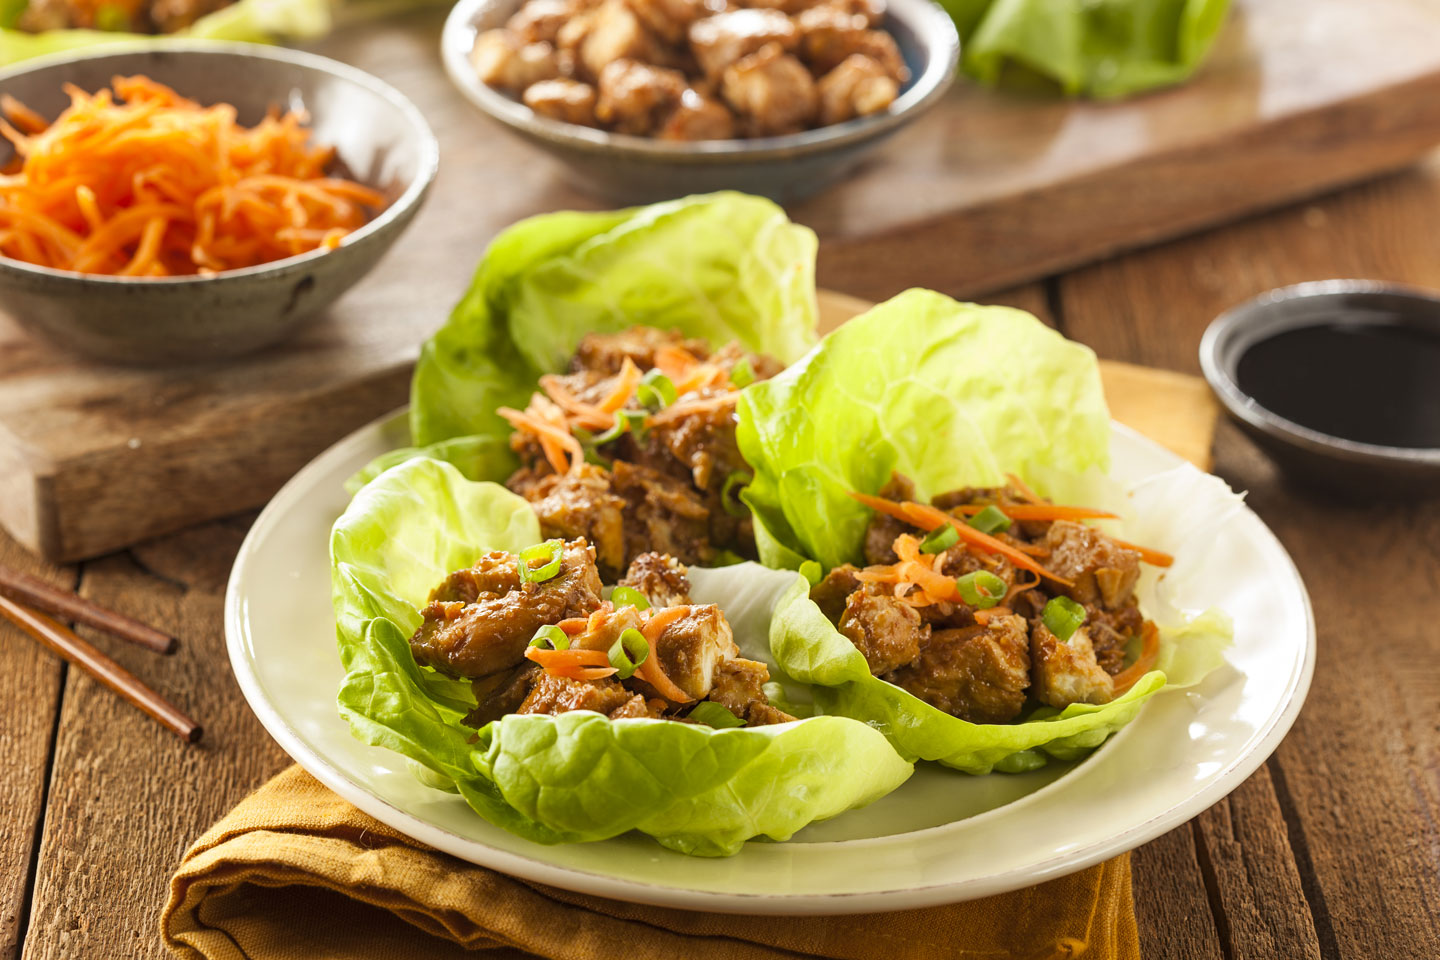 Looking for an Easy Midweek Meal? Try Our San Choy Bow Recipe